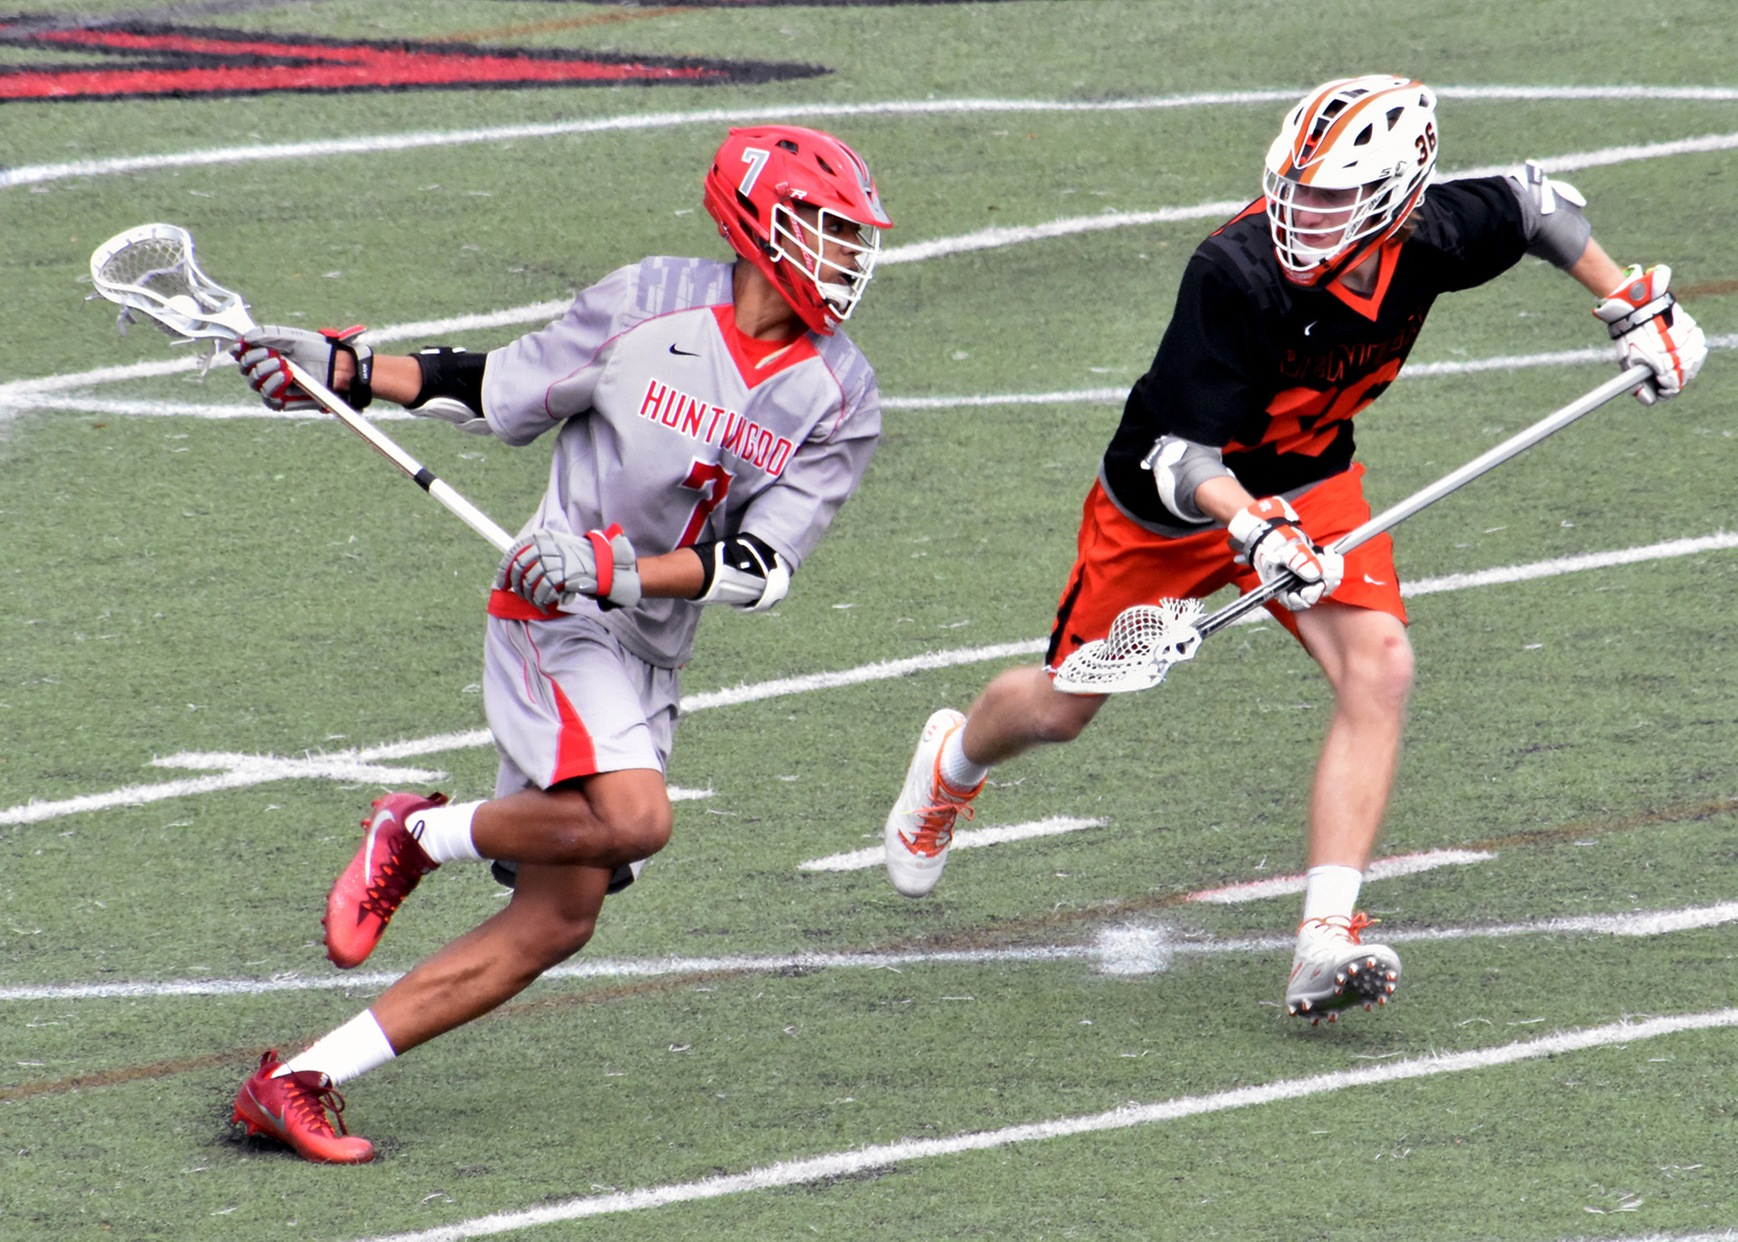 Adrian Harper had three goals, three ground balls and two caused turnovers in Saturday's win at Hendrix.